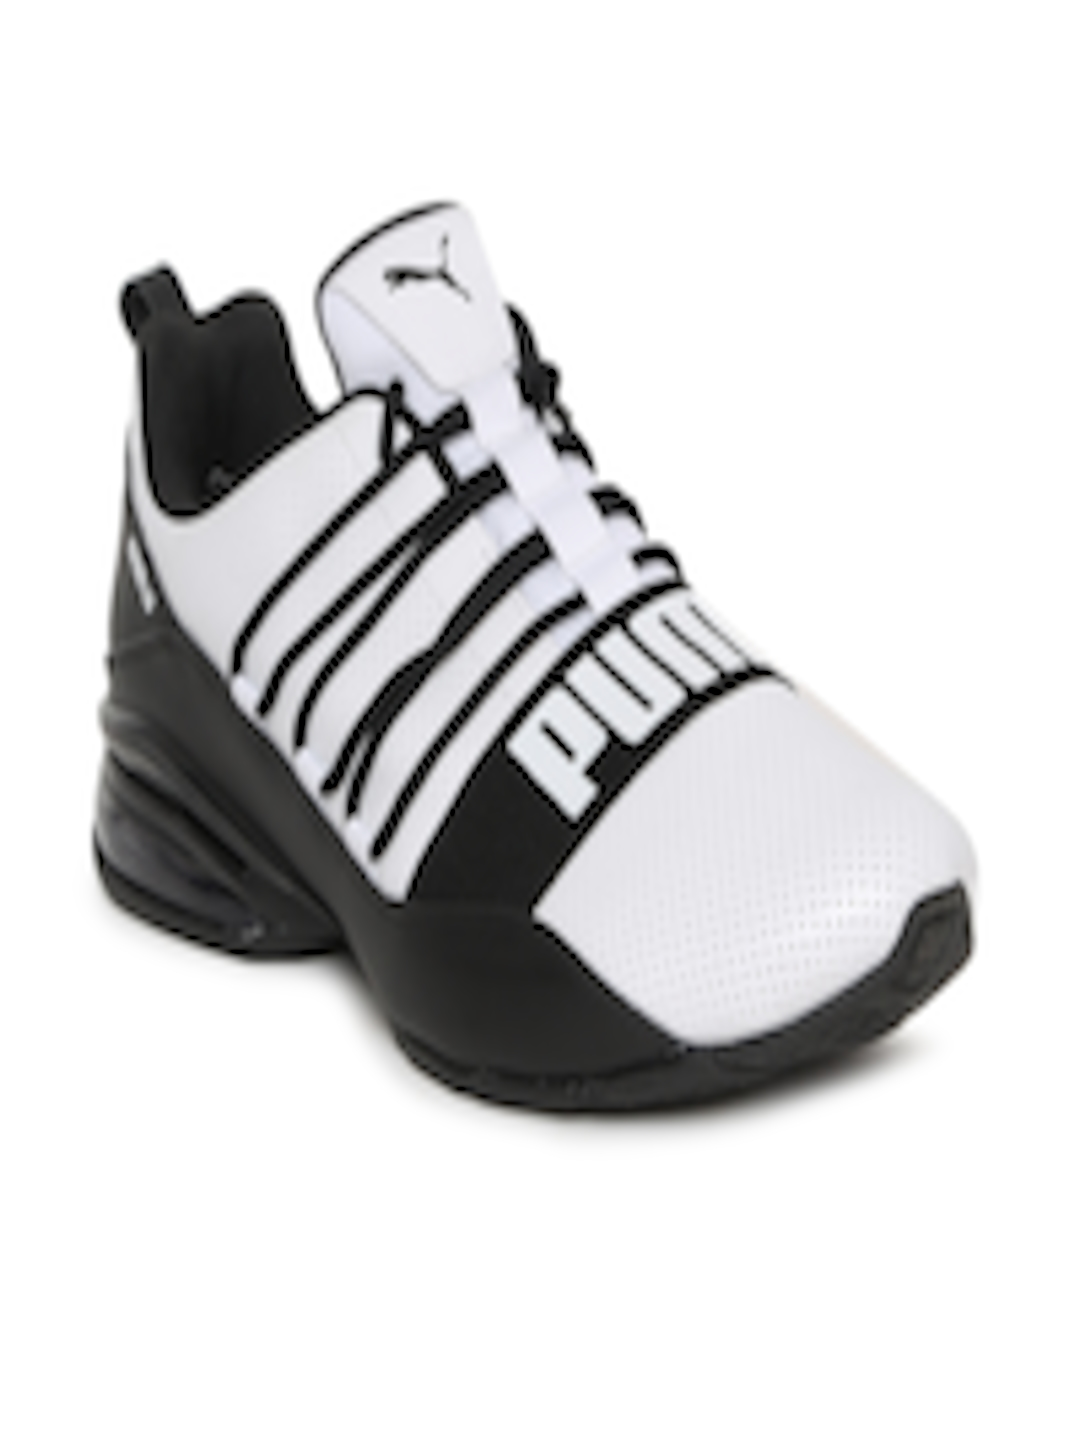 a4a0eeb78119 Buy Puma Men White   Black Cell Regulate SL Sports Running Shoes - Sports  Shoes for Men 6704280